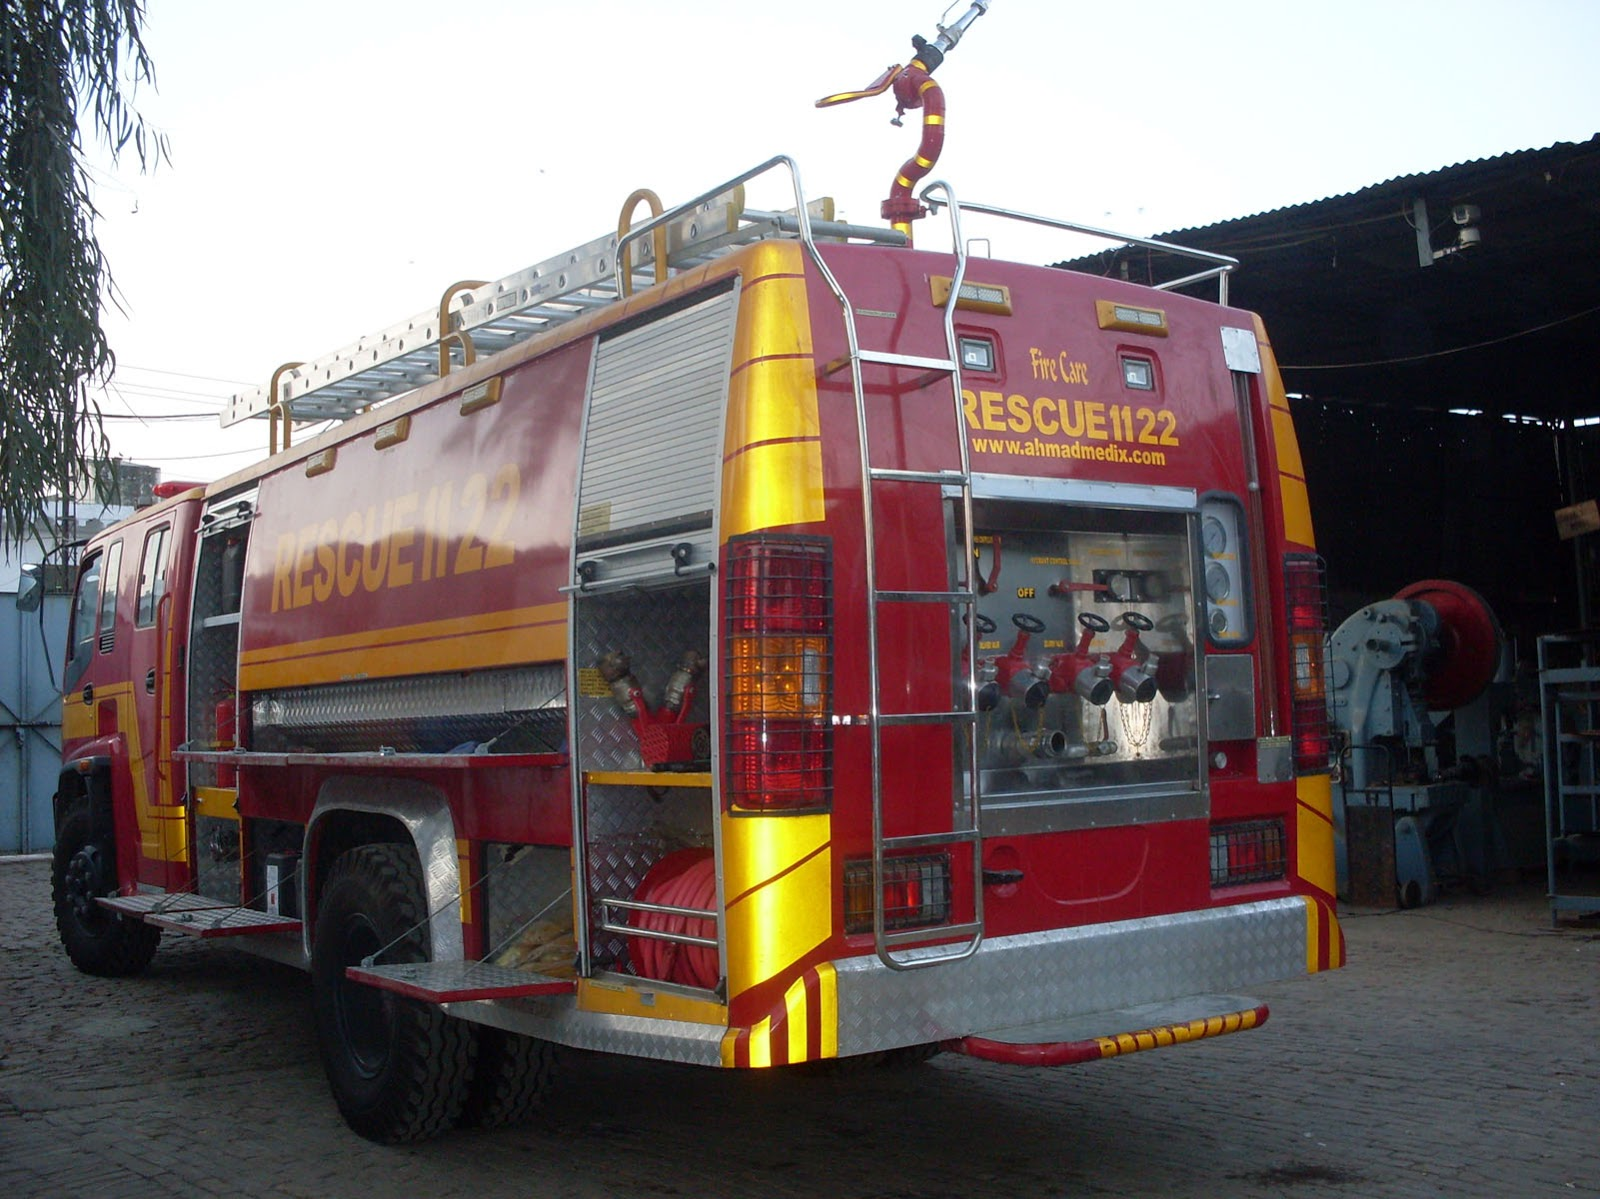 Ahmad Medix (Life Care): PTO SYSTEM OF FIRE TRUCK